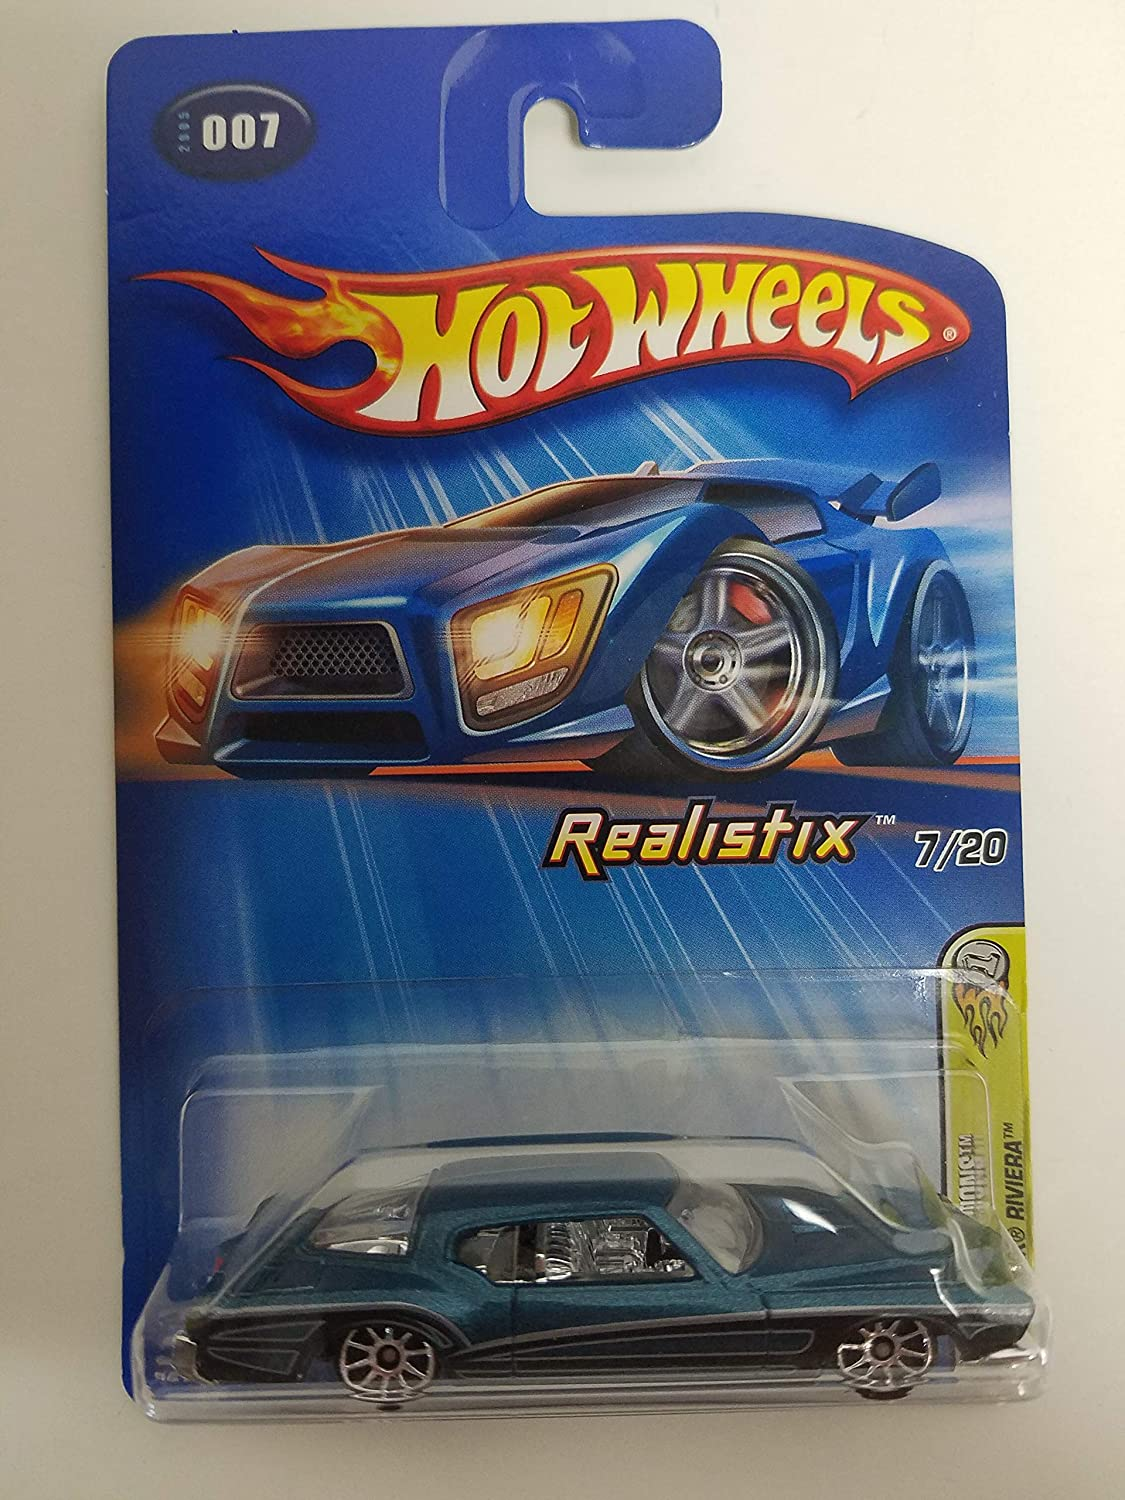 1971 Buick Riviera Teal Color 2005 First Editions Hot Wheels Diecast Car No 007 At Amazon S Sports Collectibles Store